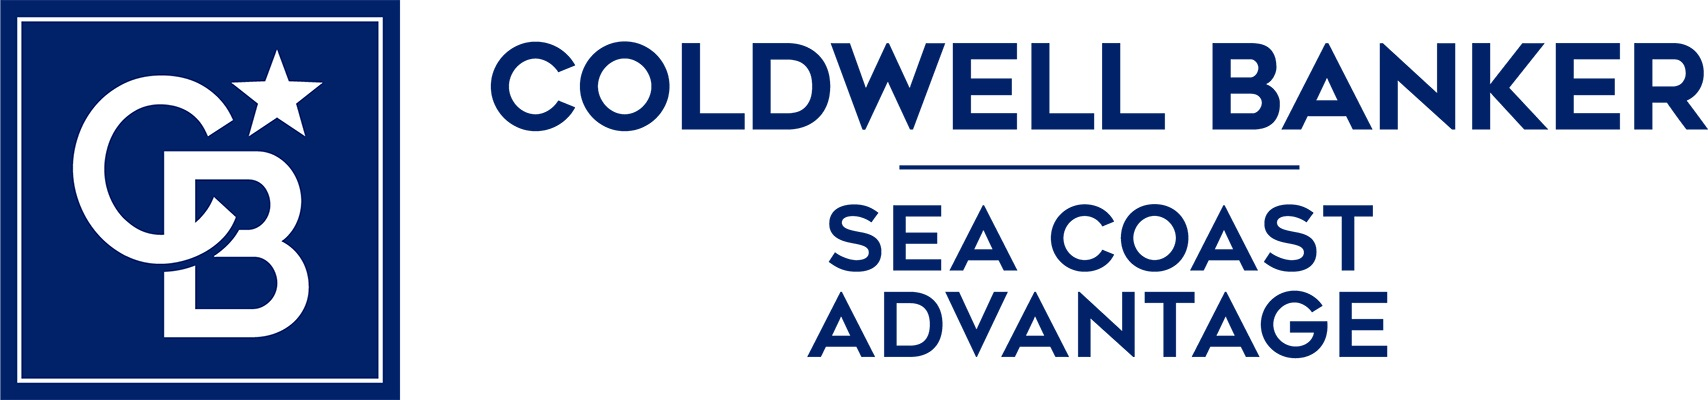 Patty Lewis - Coldwell Banker Sea Coast Advantage Realty